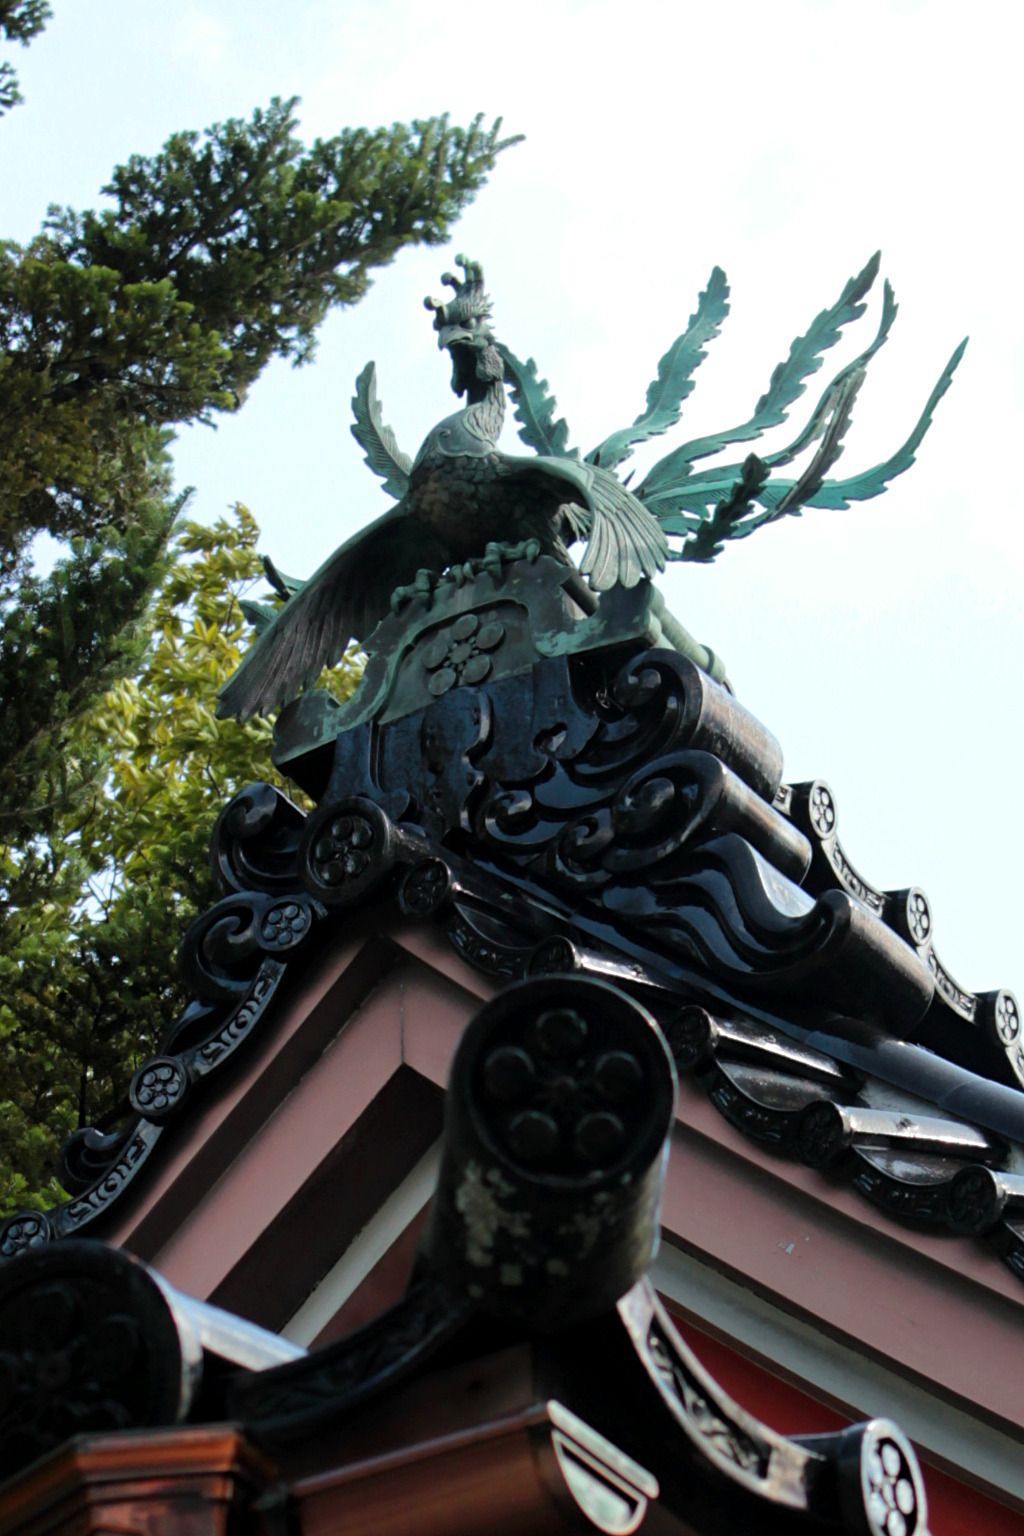 The phoenix of Kanazawa Shrine